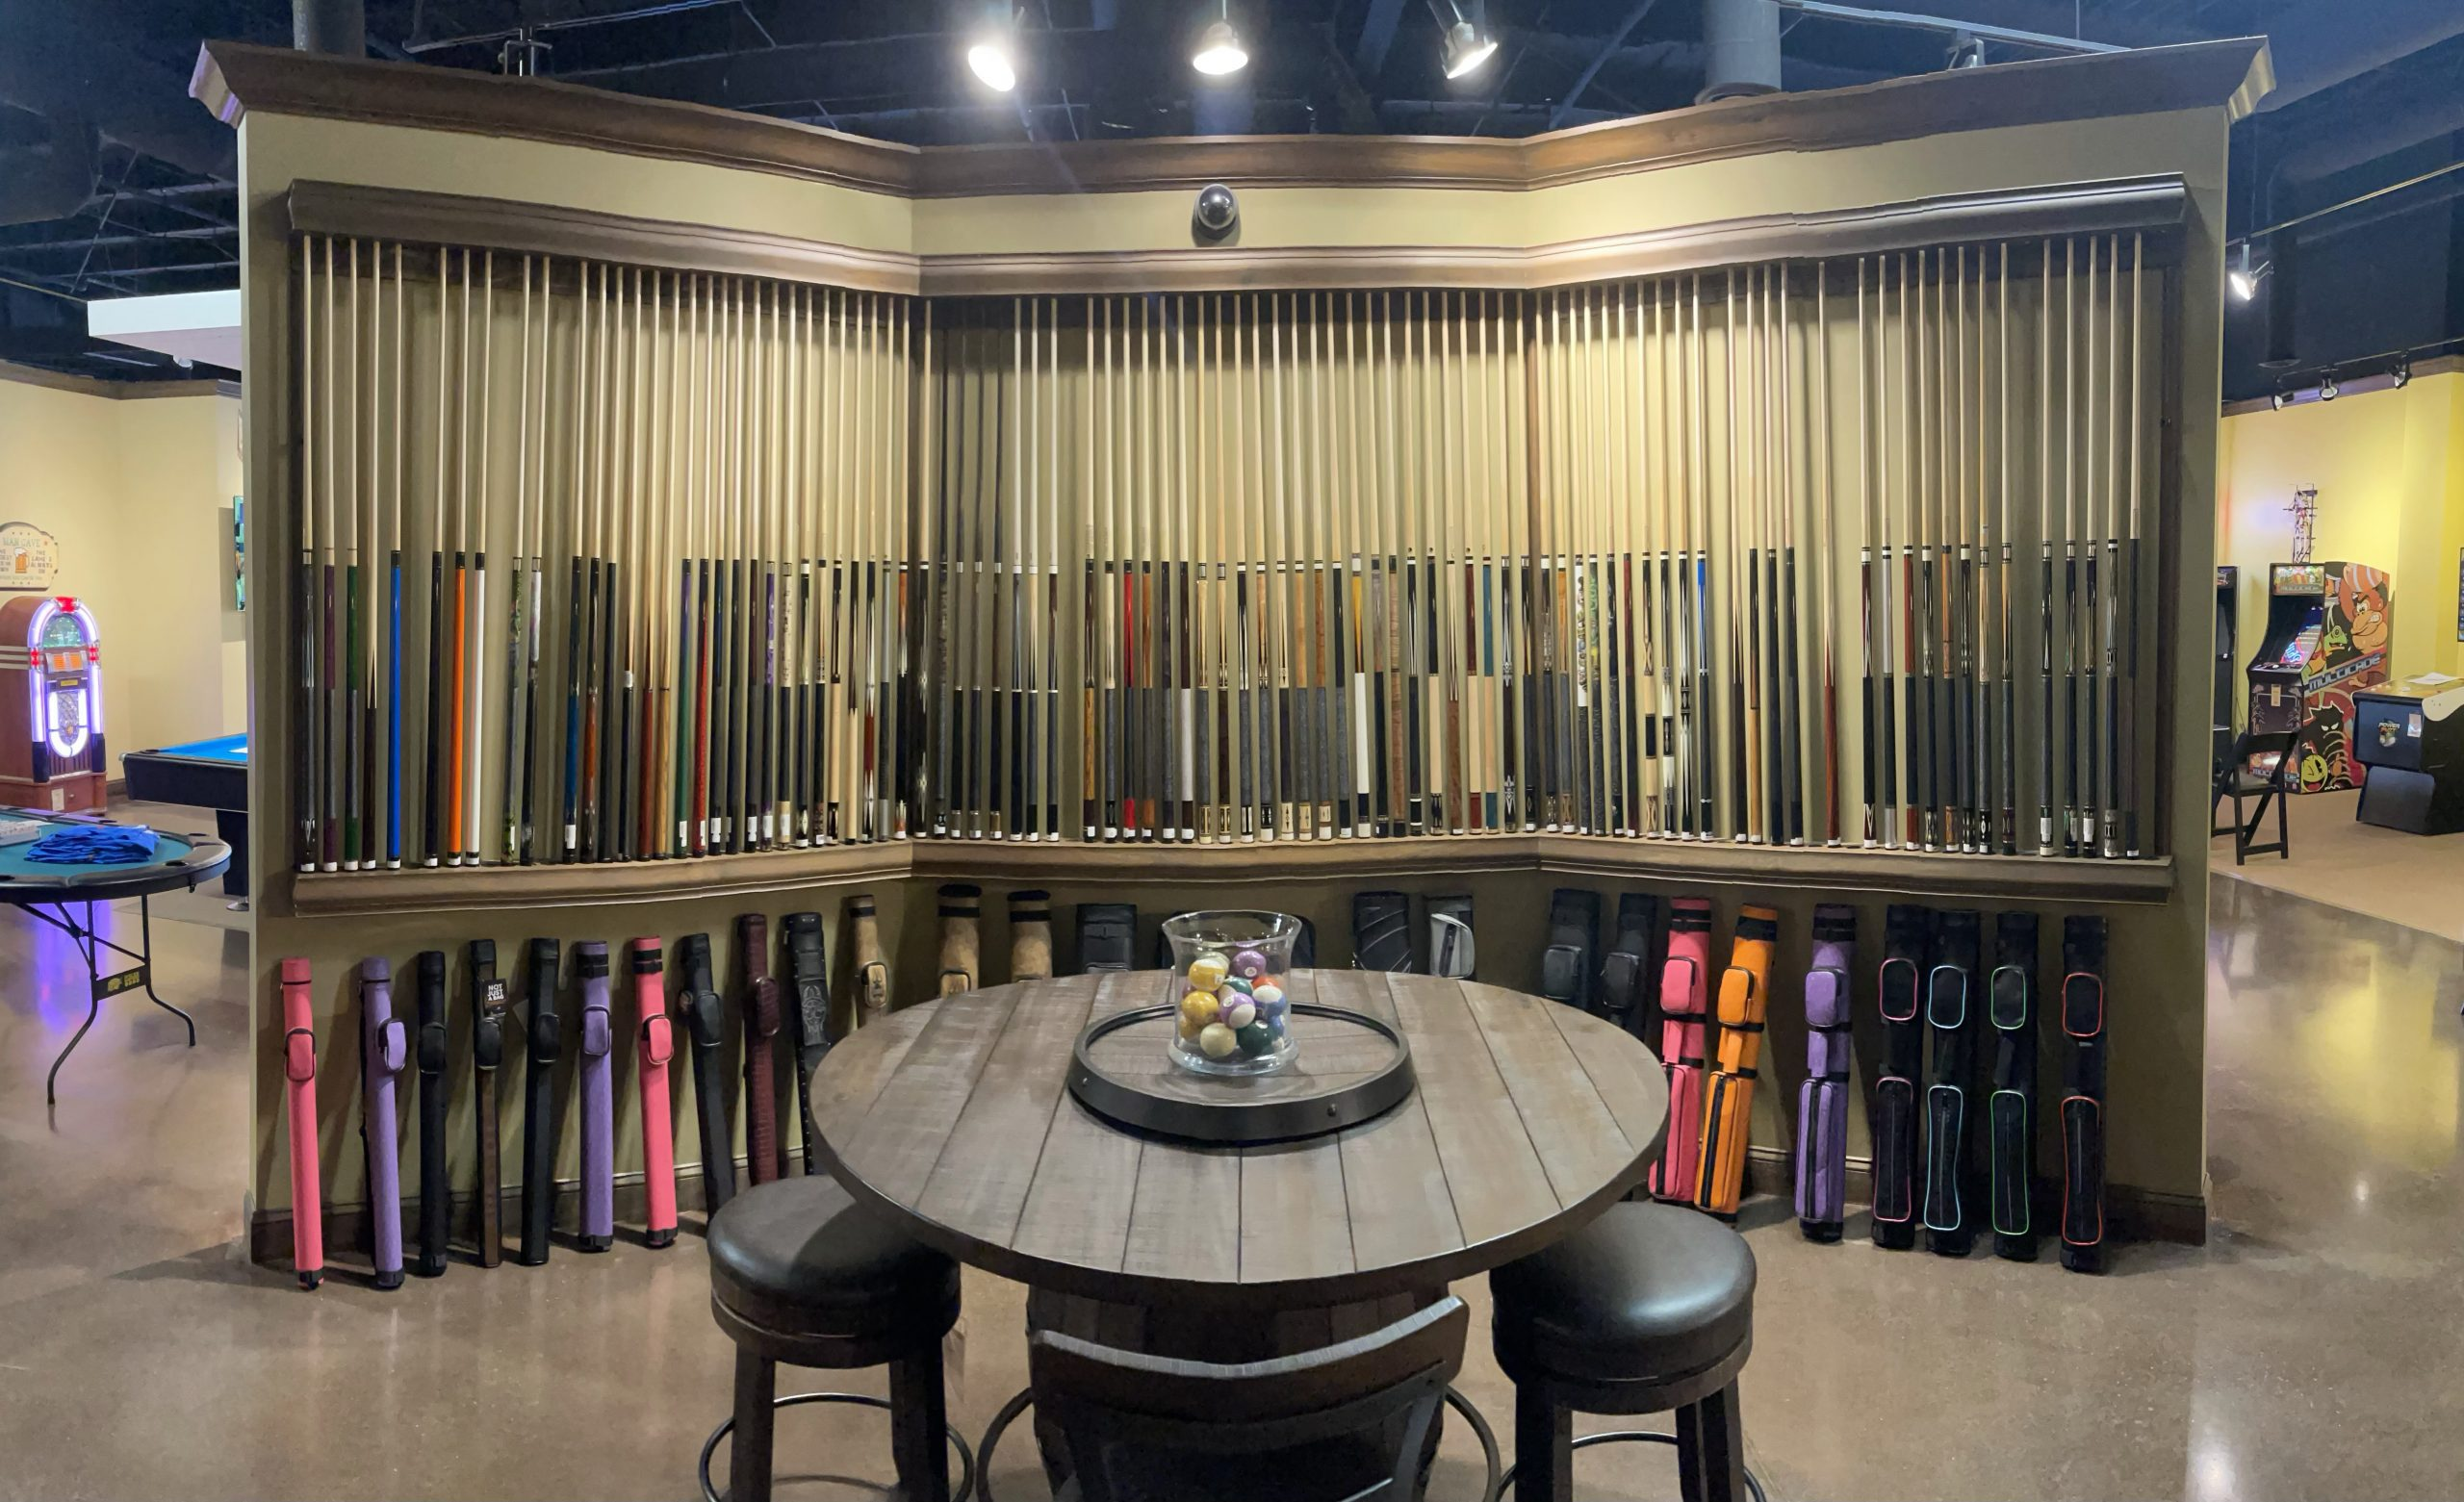 pool cue selection at Games & Things in Knoxville TN